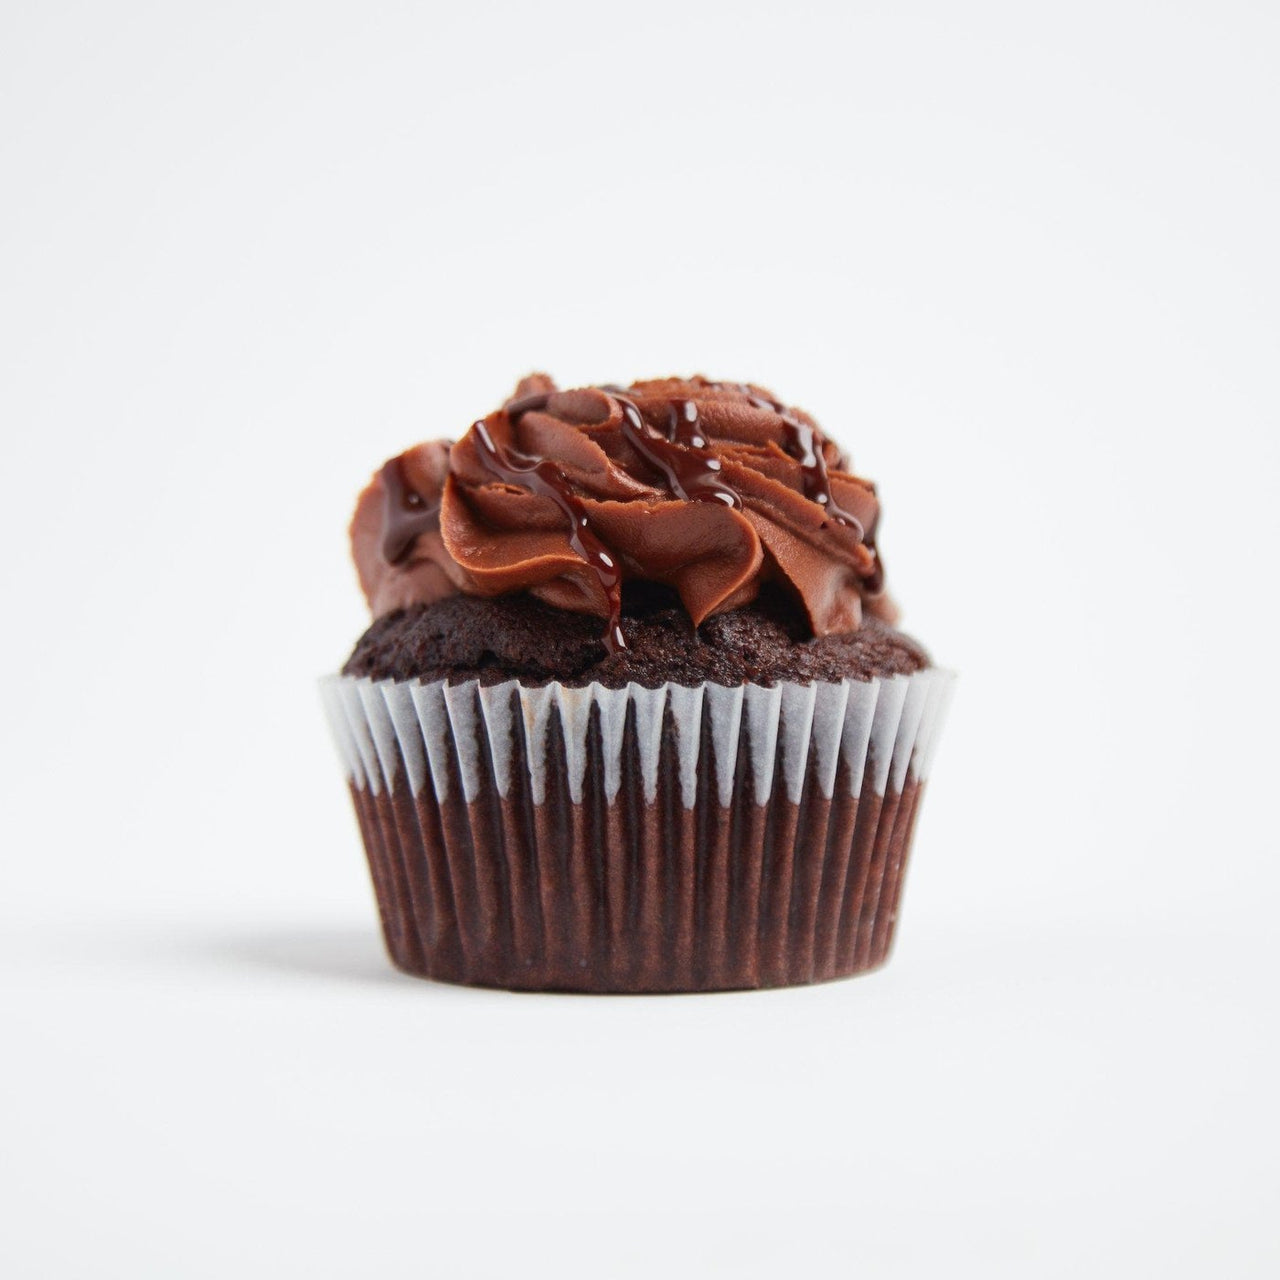 Vegan Chocolate Cupcakes by Crumbs & Doilies